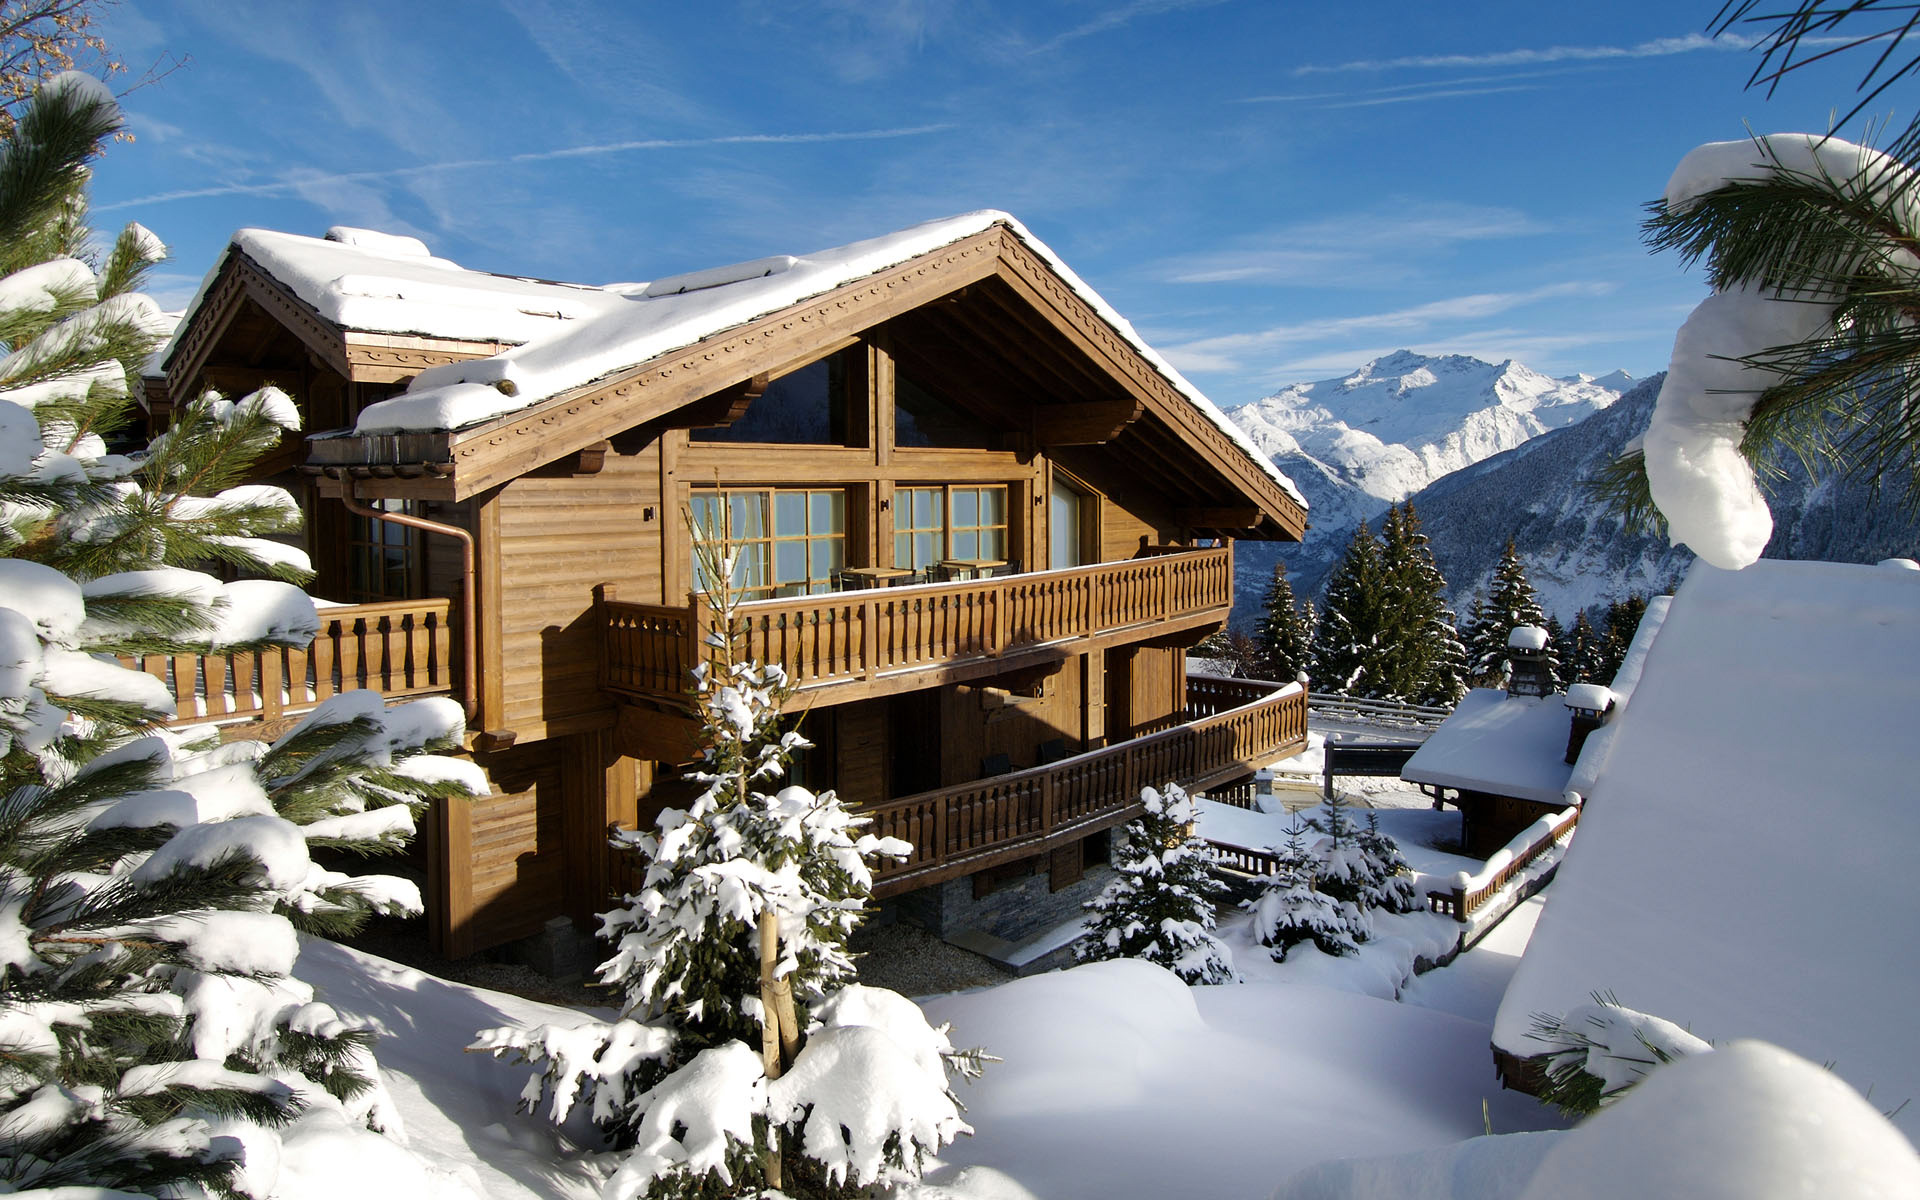 Chalet Le Blanchot, Courchevel 1850, Alpes, France